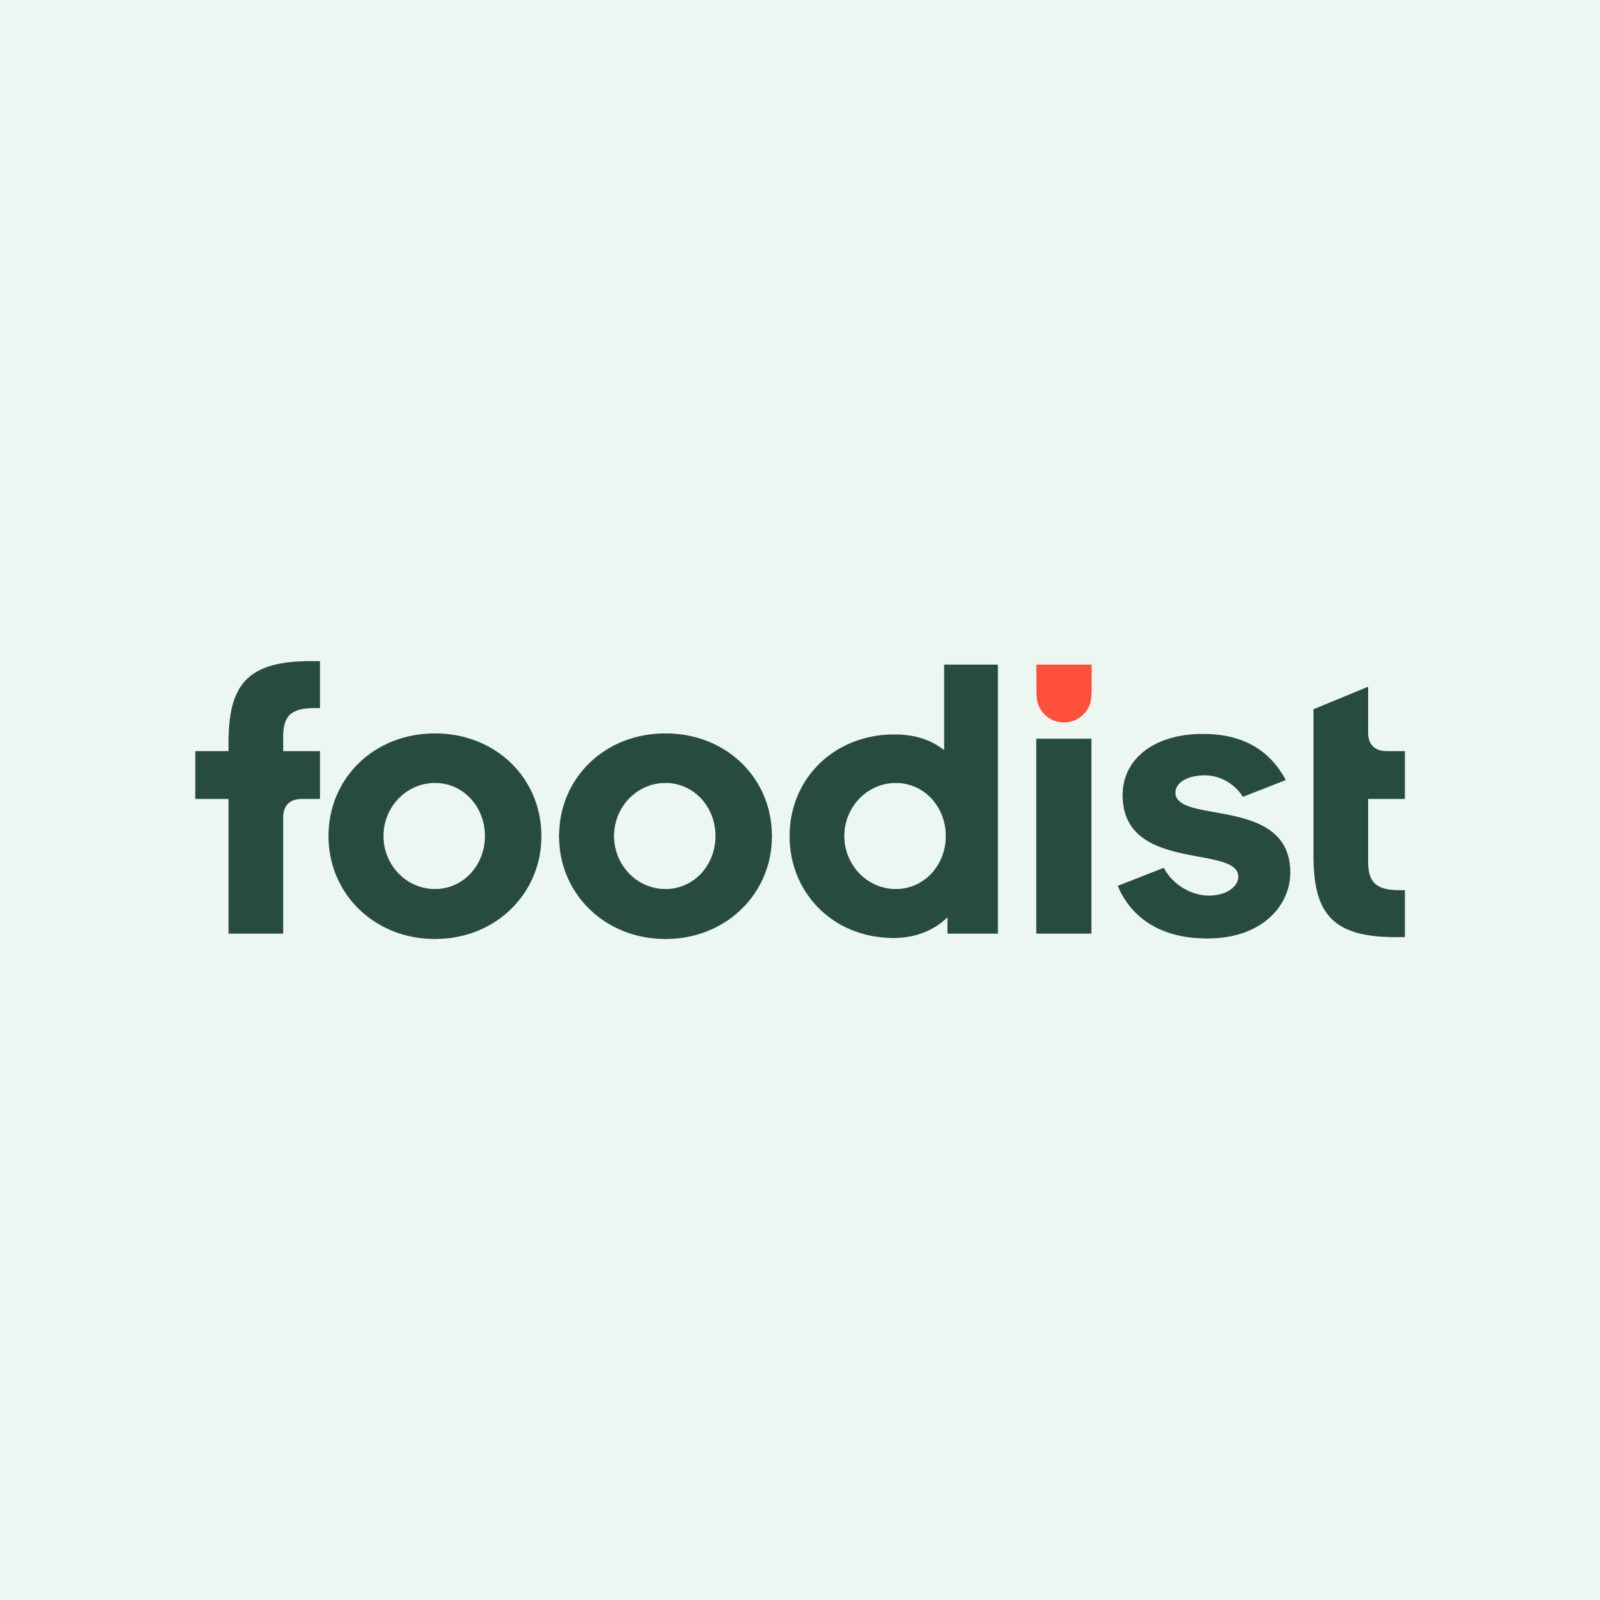 Foodist - Logo